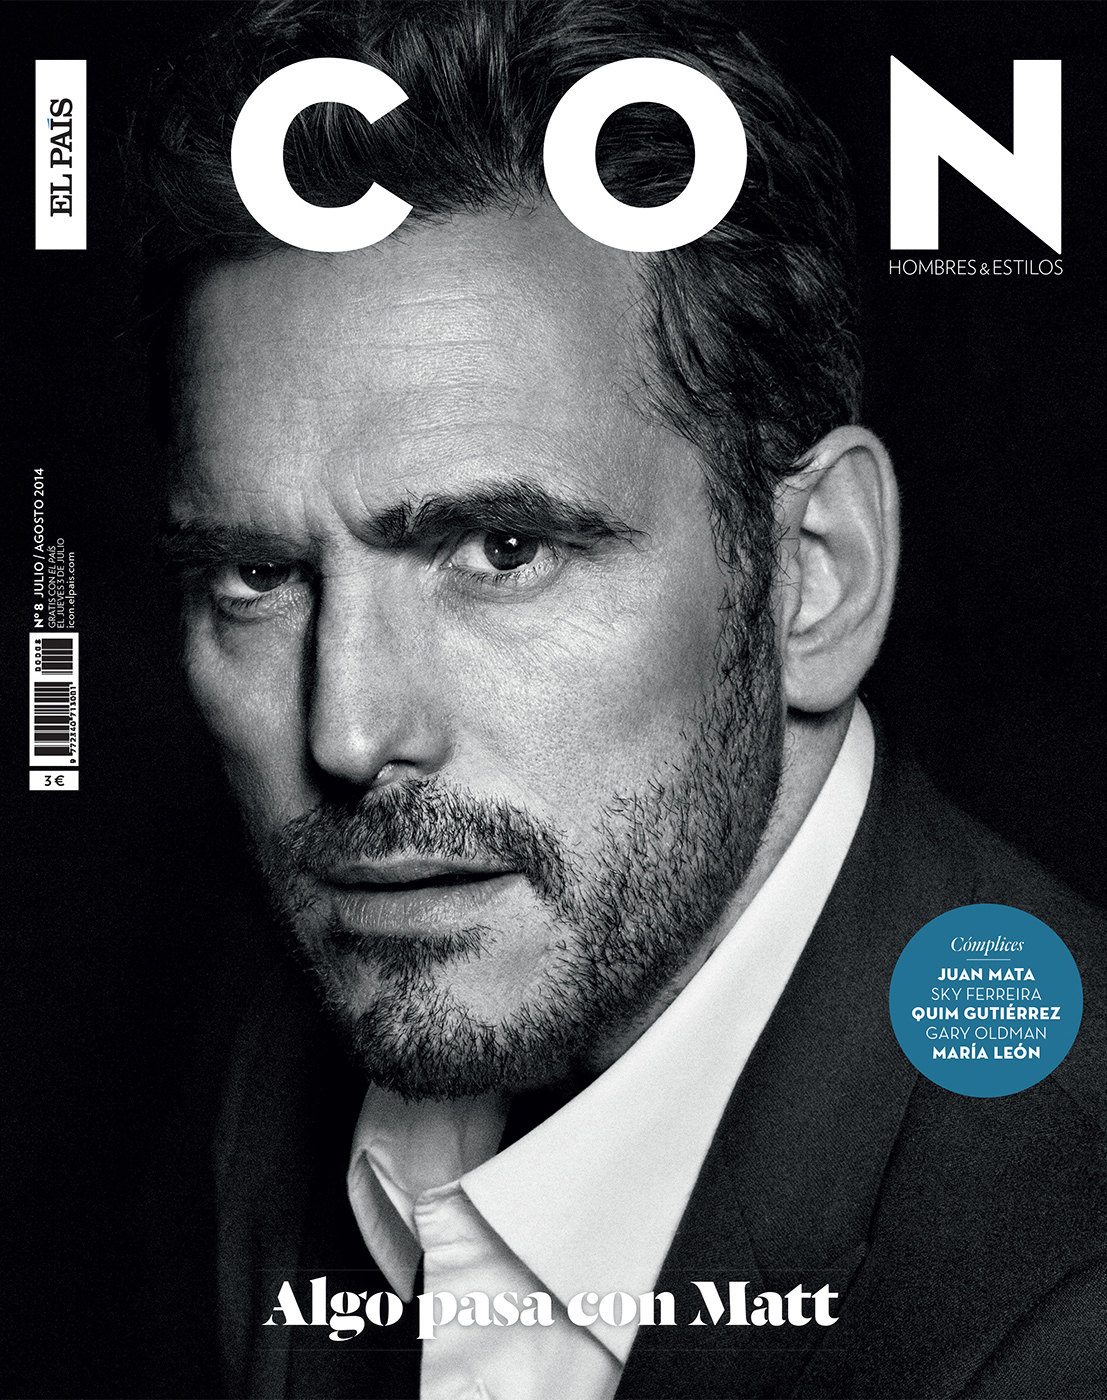 Celebrity Photographer Michael Schwartz: Matt Dillon for Icon magazine cover